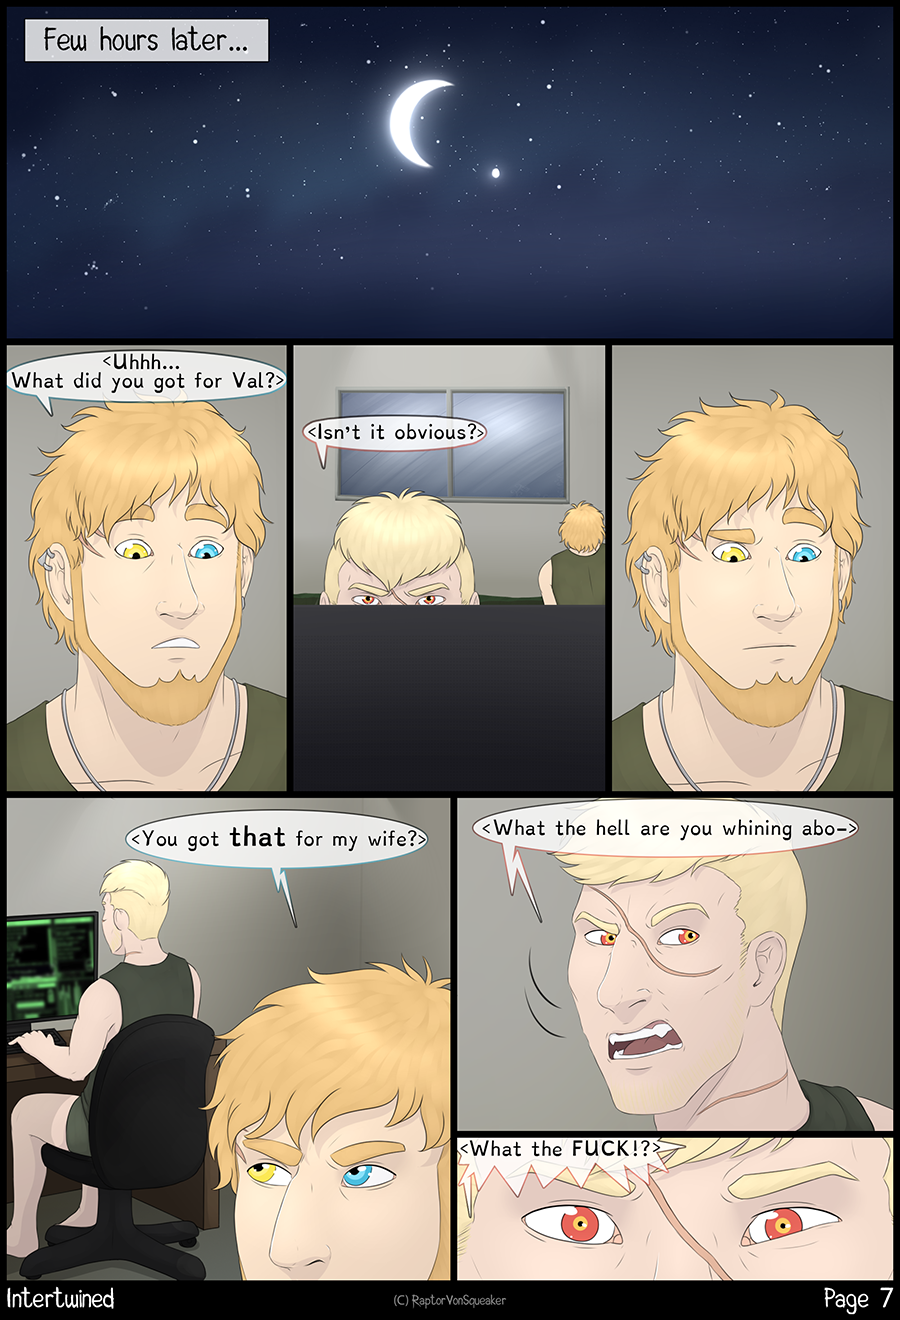 Page 7 - Are you sure?